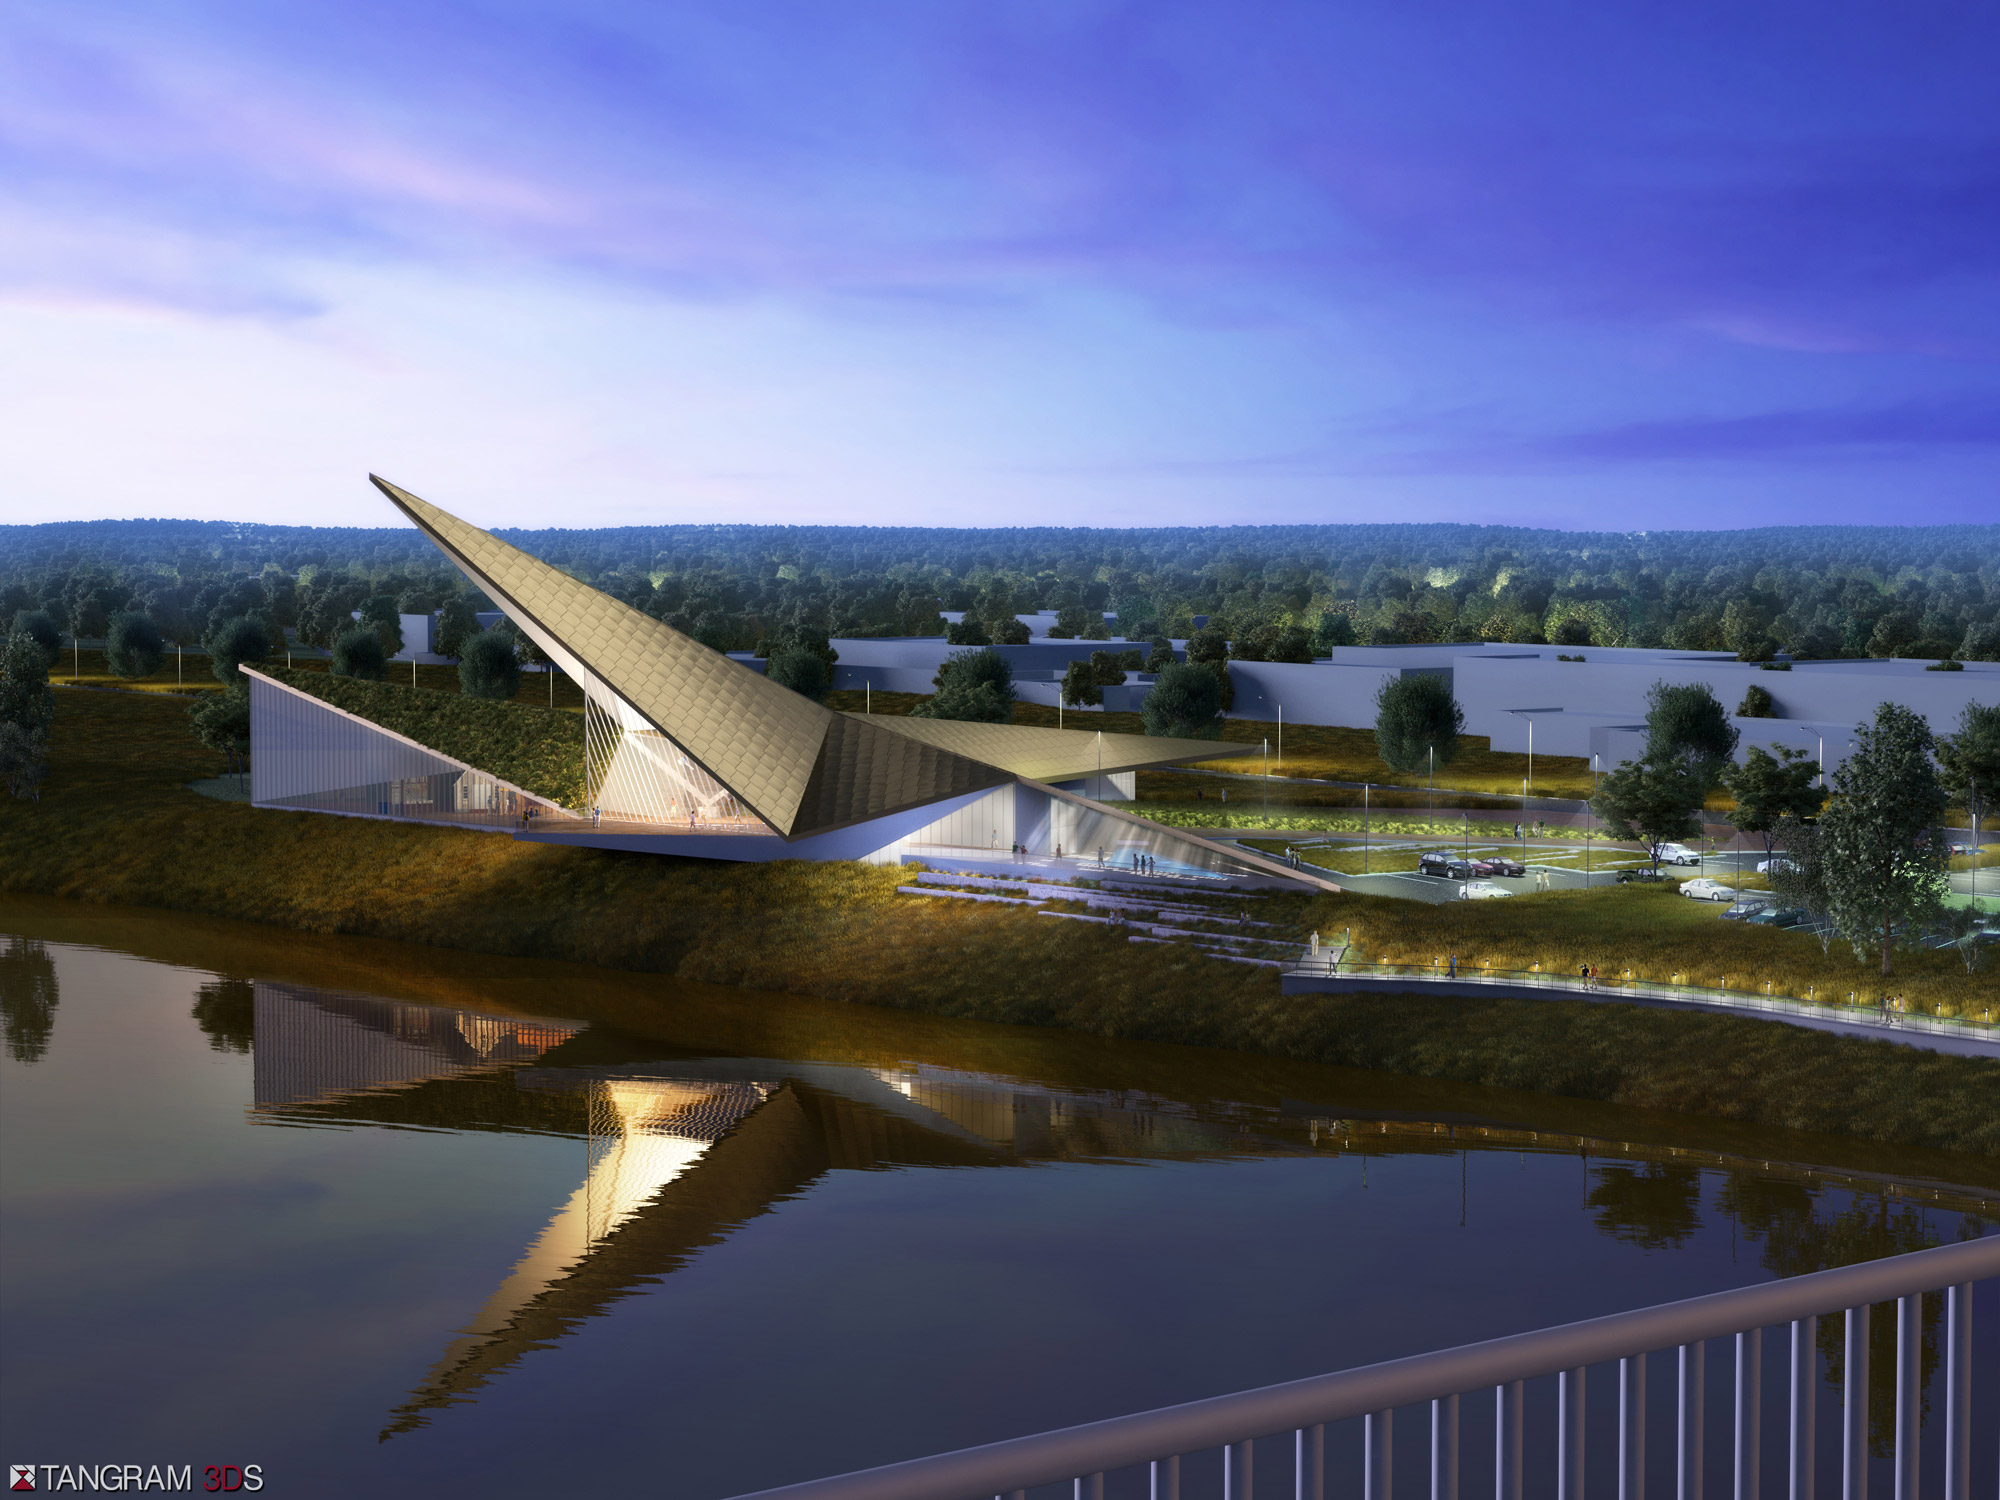 U.S. Marshals Museum receives $1 million donation